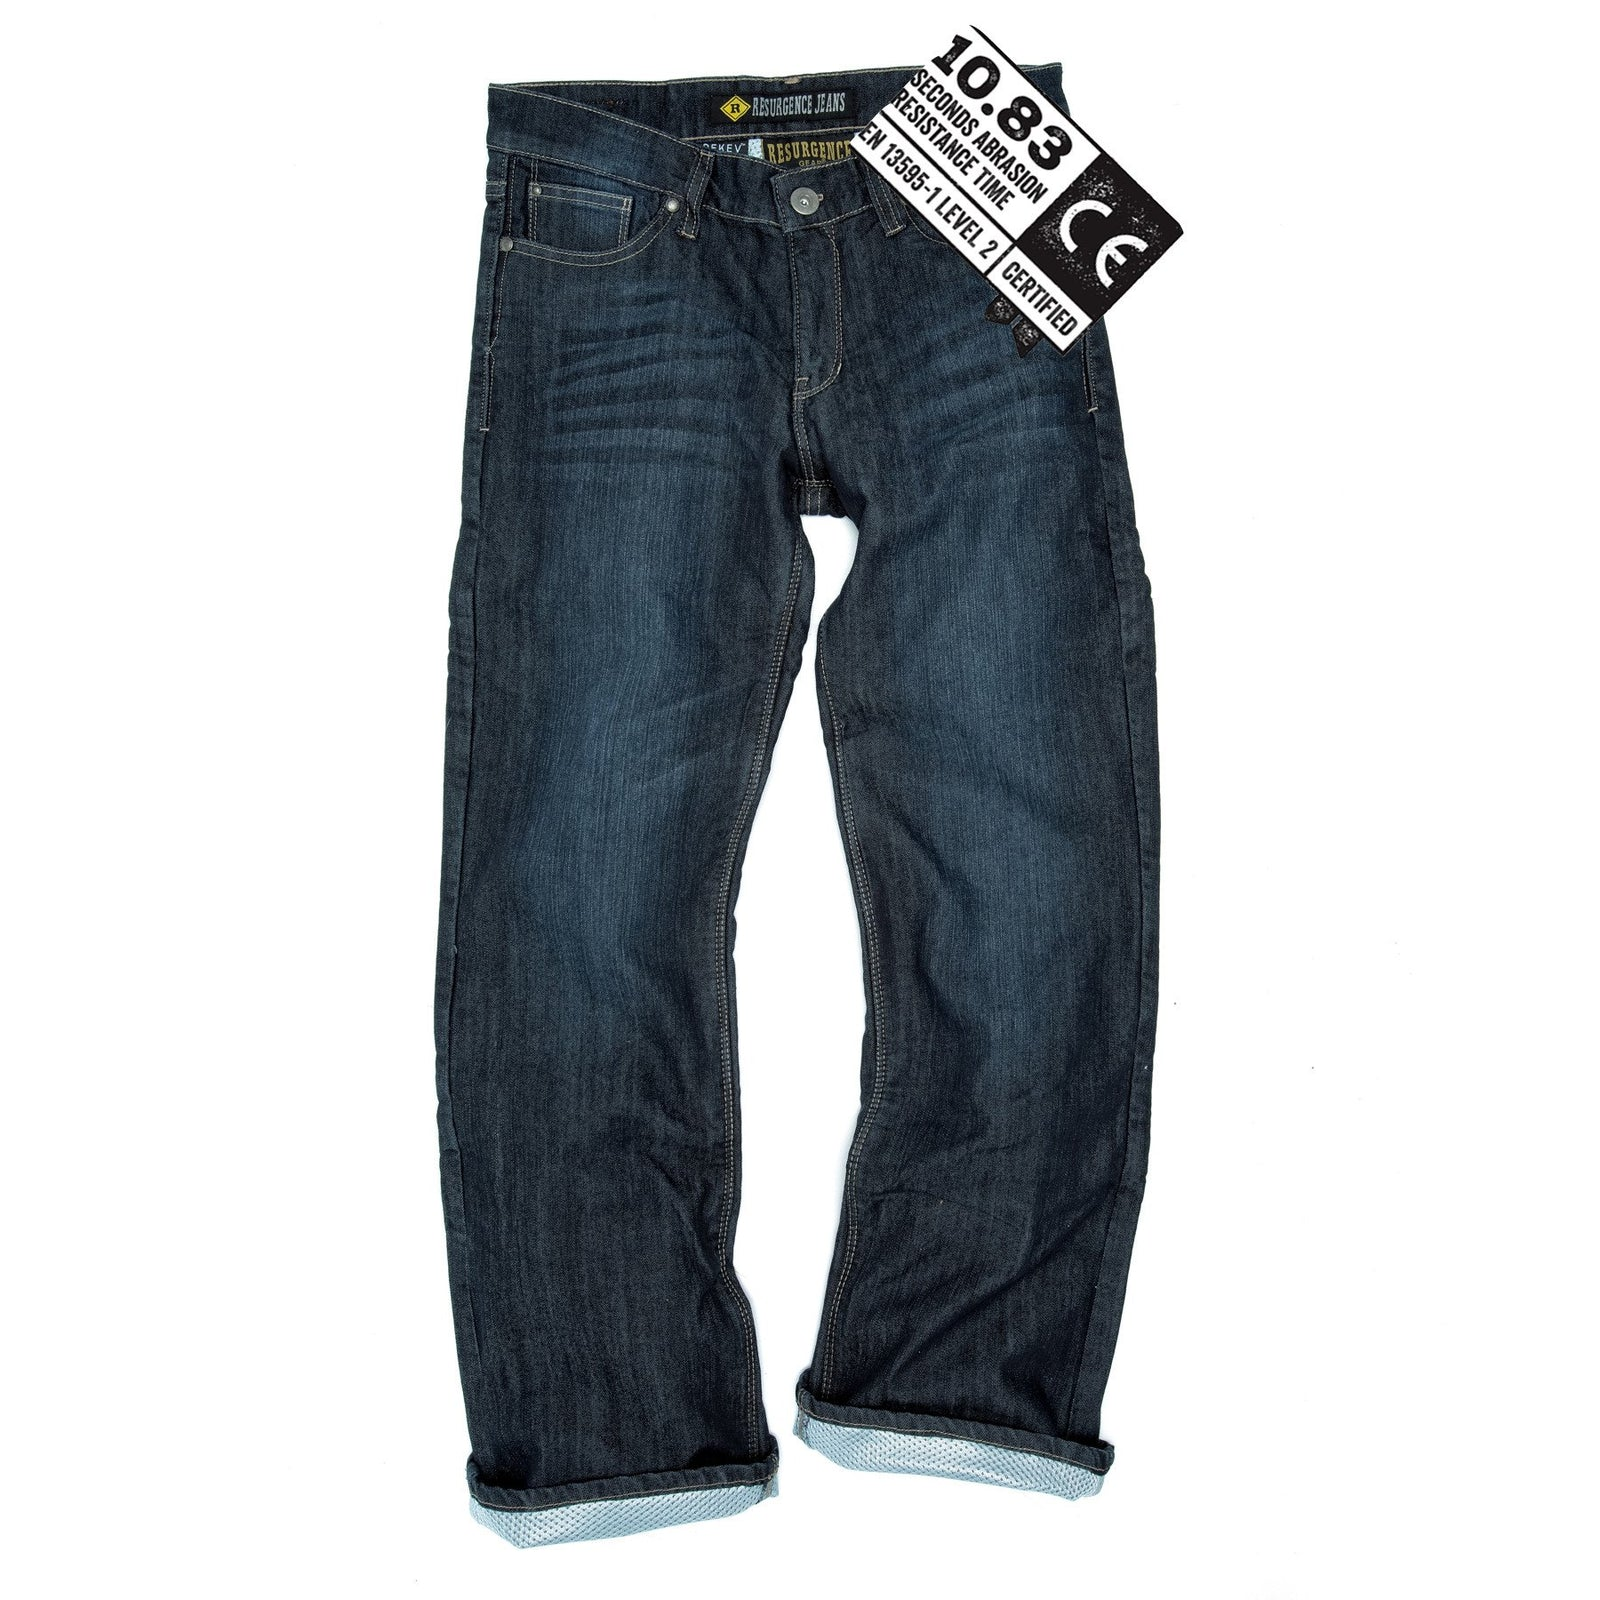 Ladies Voyager PEKEV motorbike jeans, safer alternative to Kevlar jeans